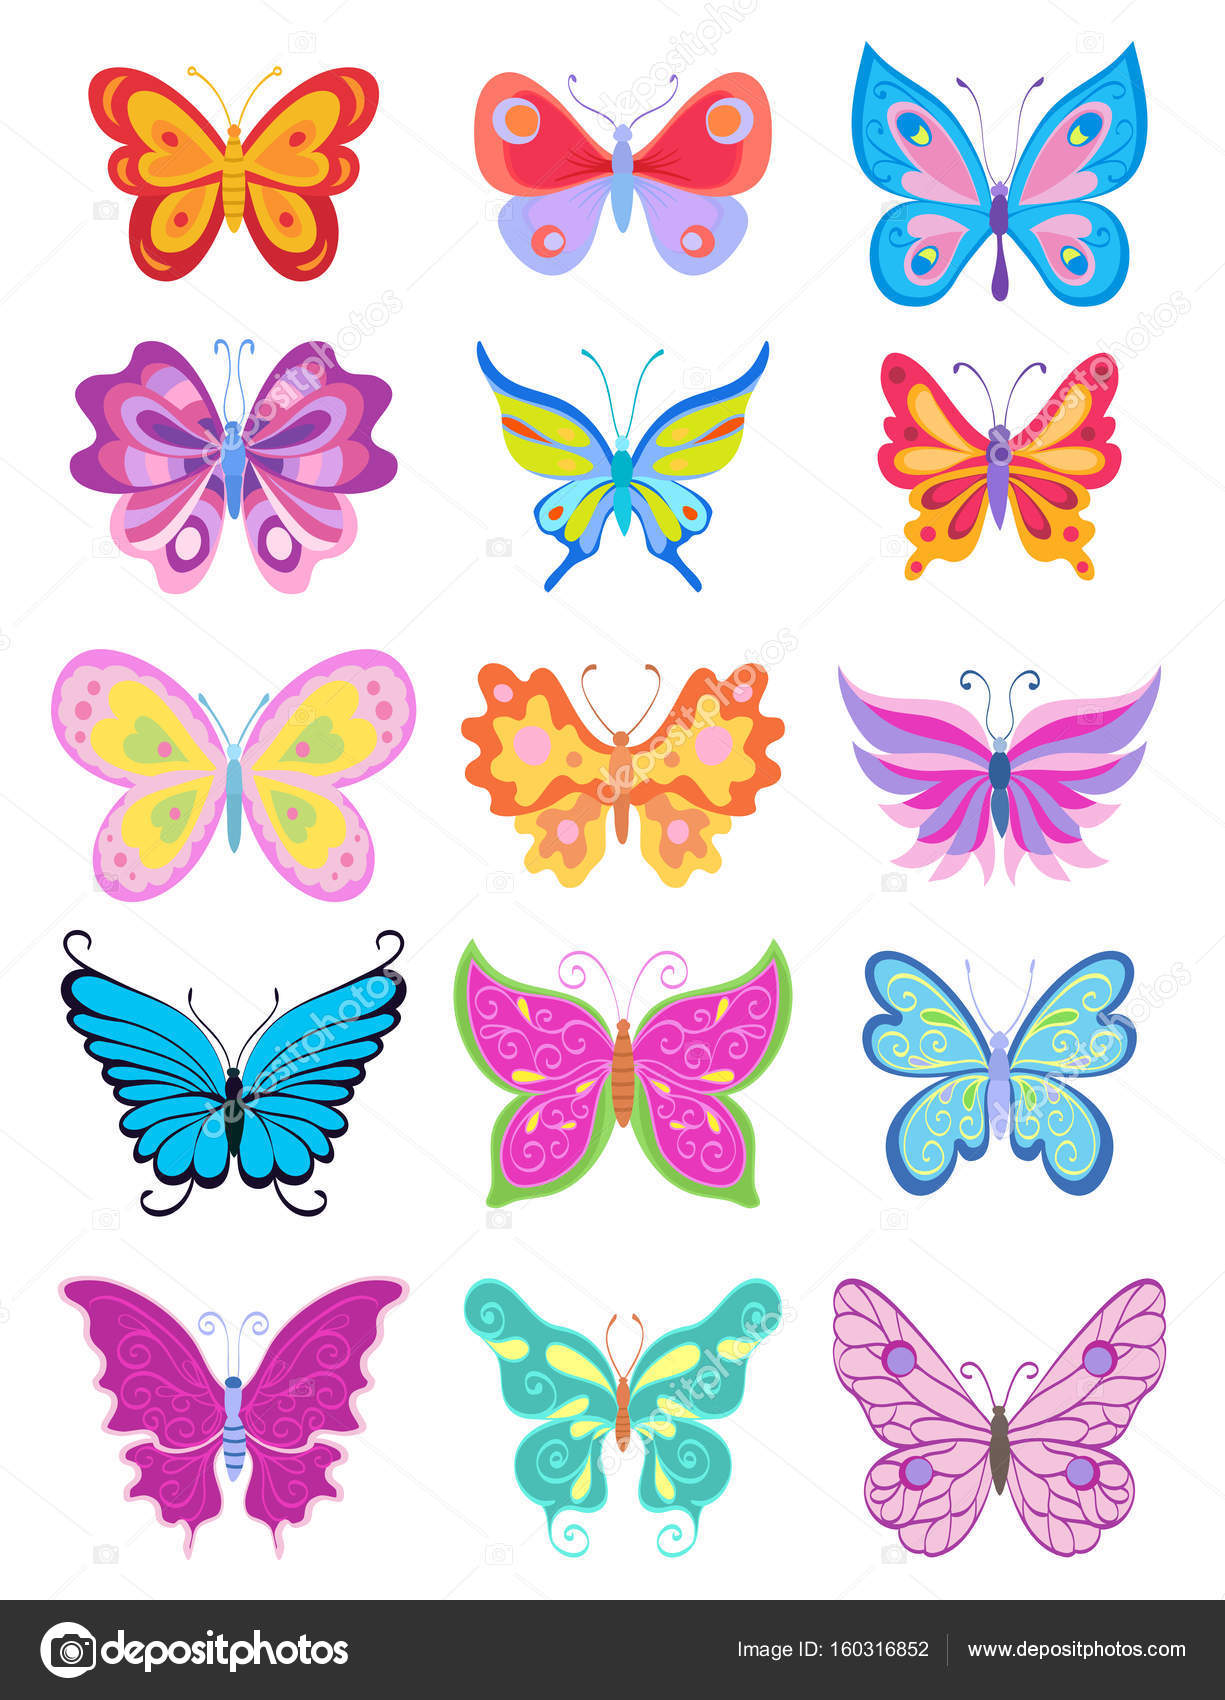 butterfly dating website Okcupid is one of the largest dating sites in the world with over 4 million monthly active users a butterfly effect at the north korean border.